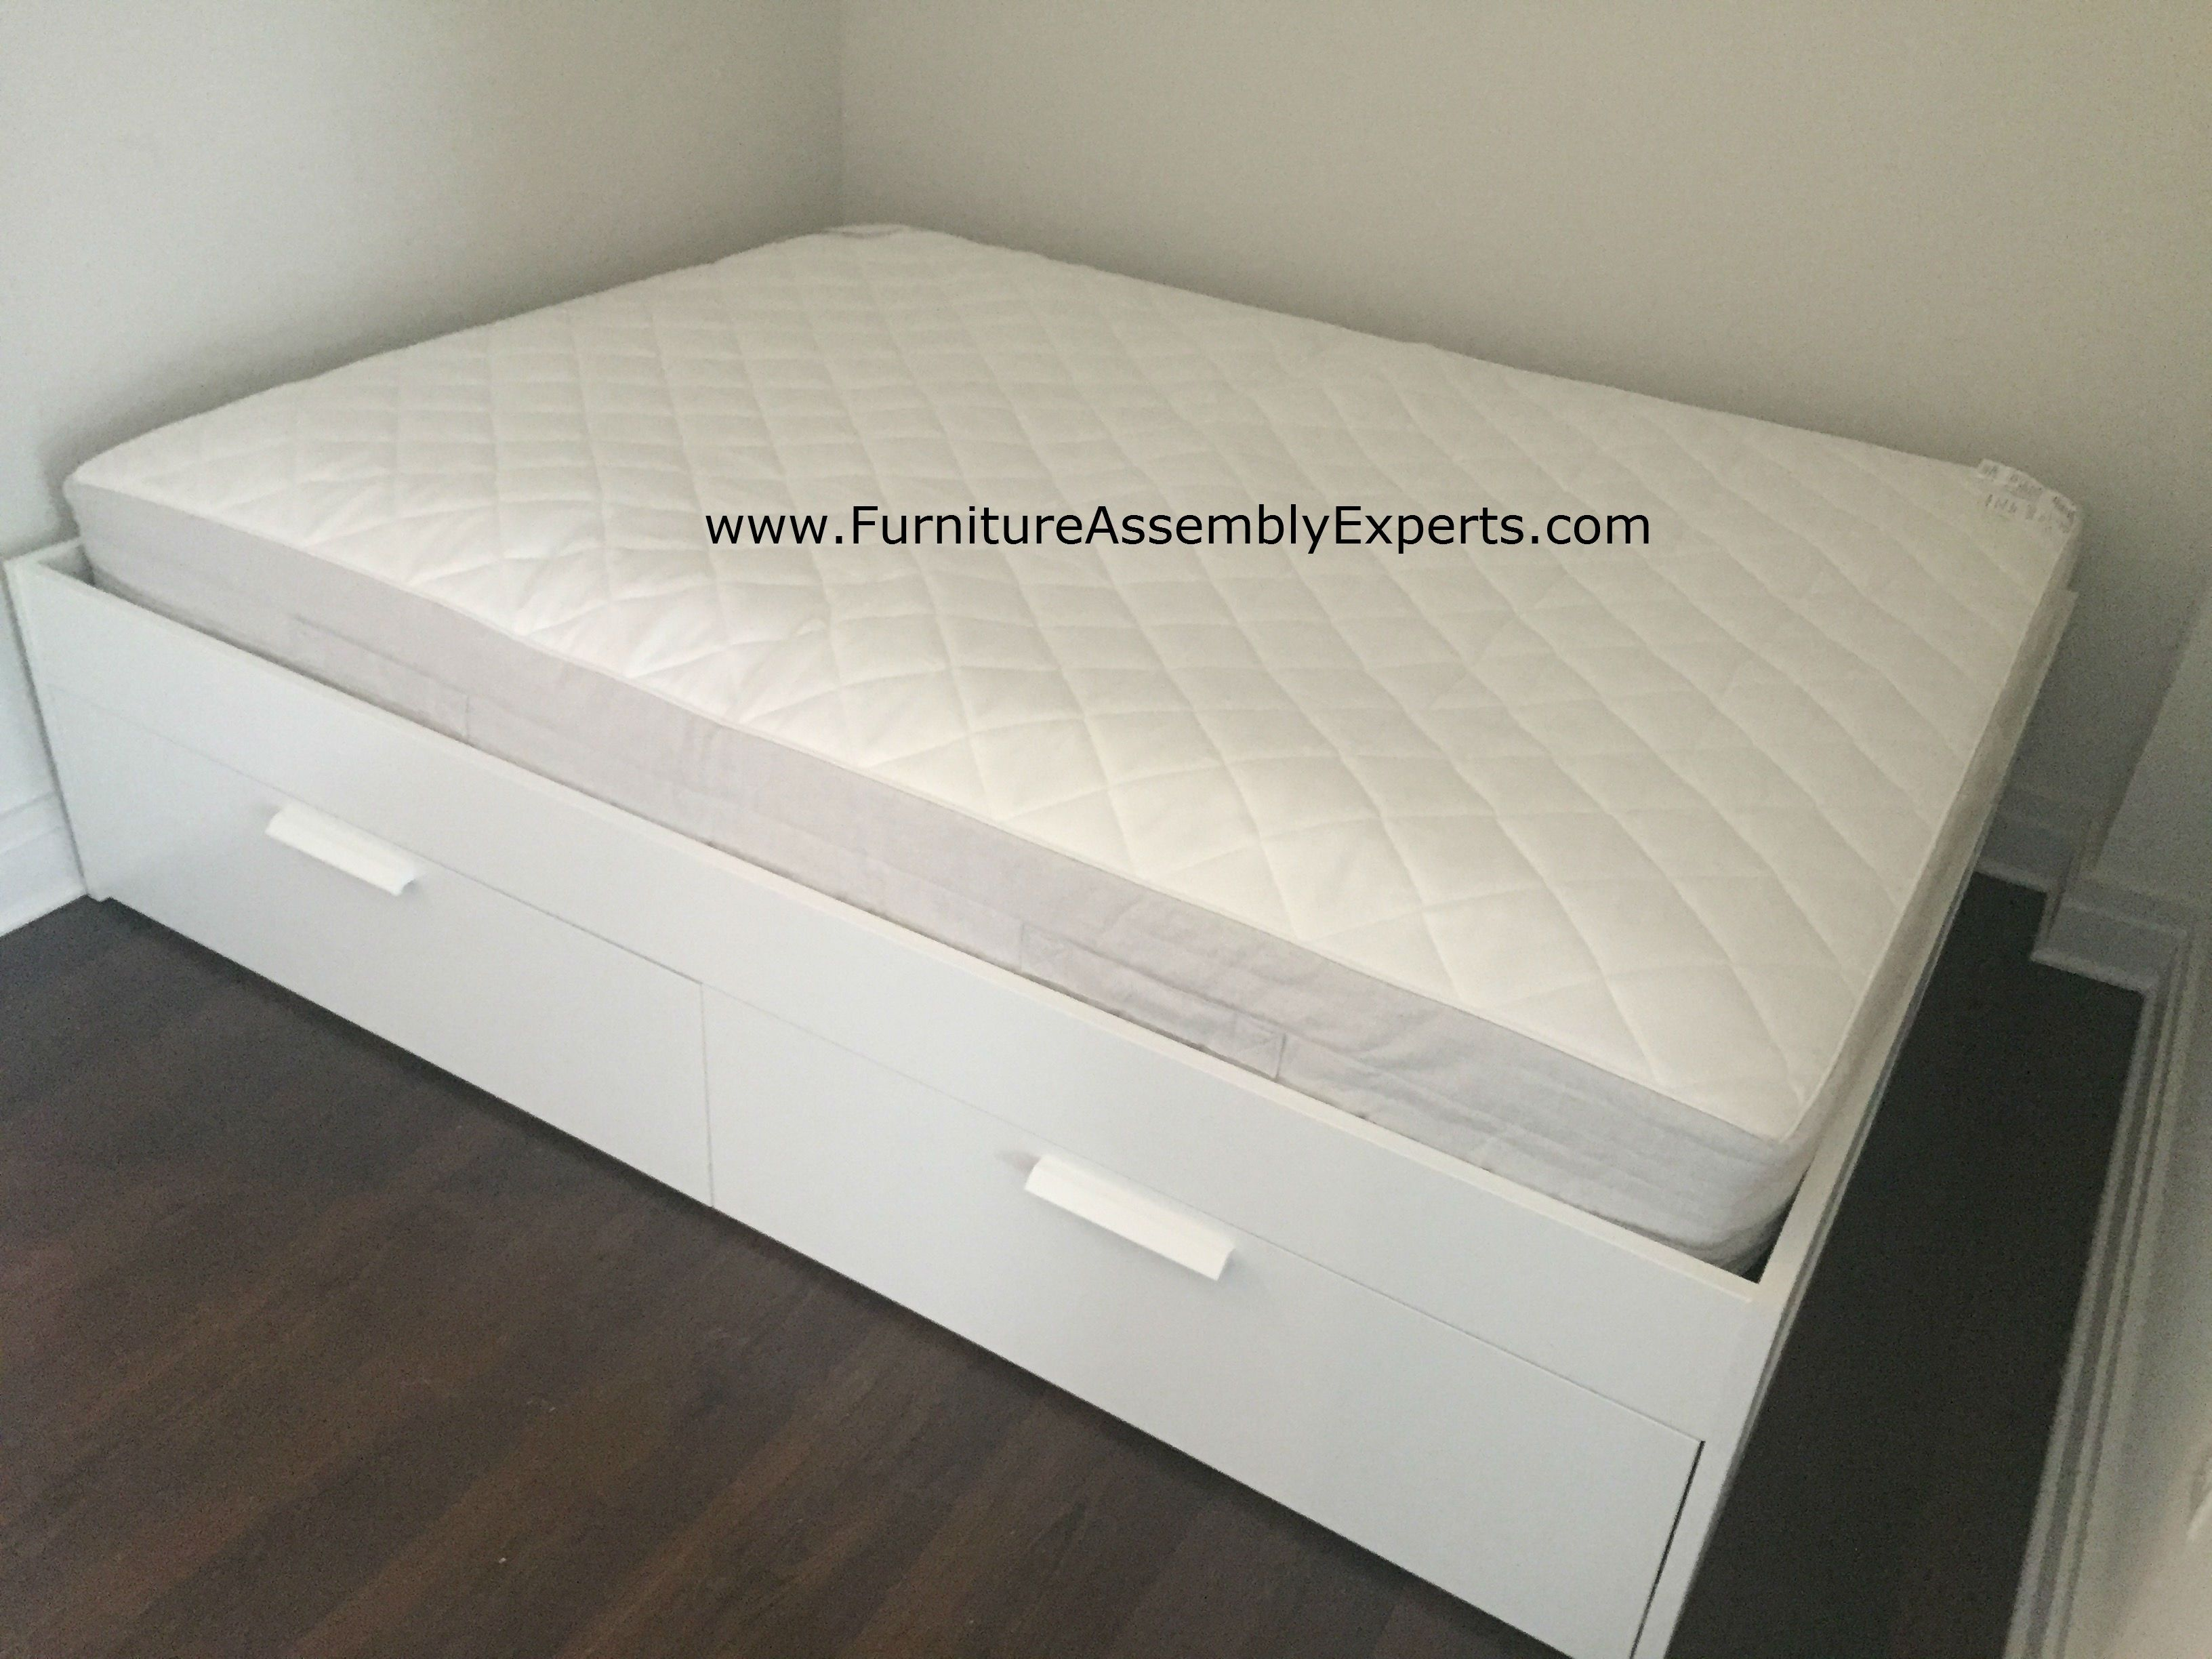 Ikea Brimnes Storage Bed Assembled In North Carolina By Furniture Assembly Experts Zolder